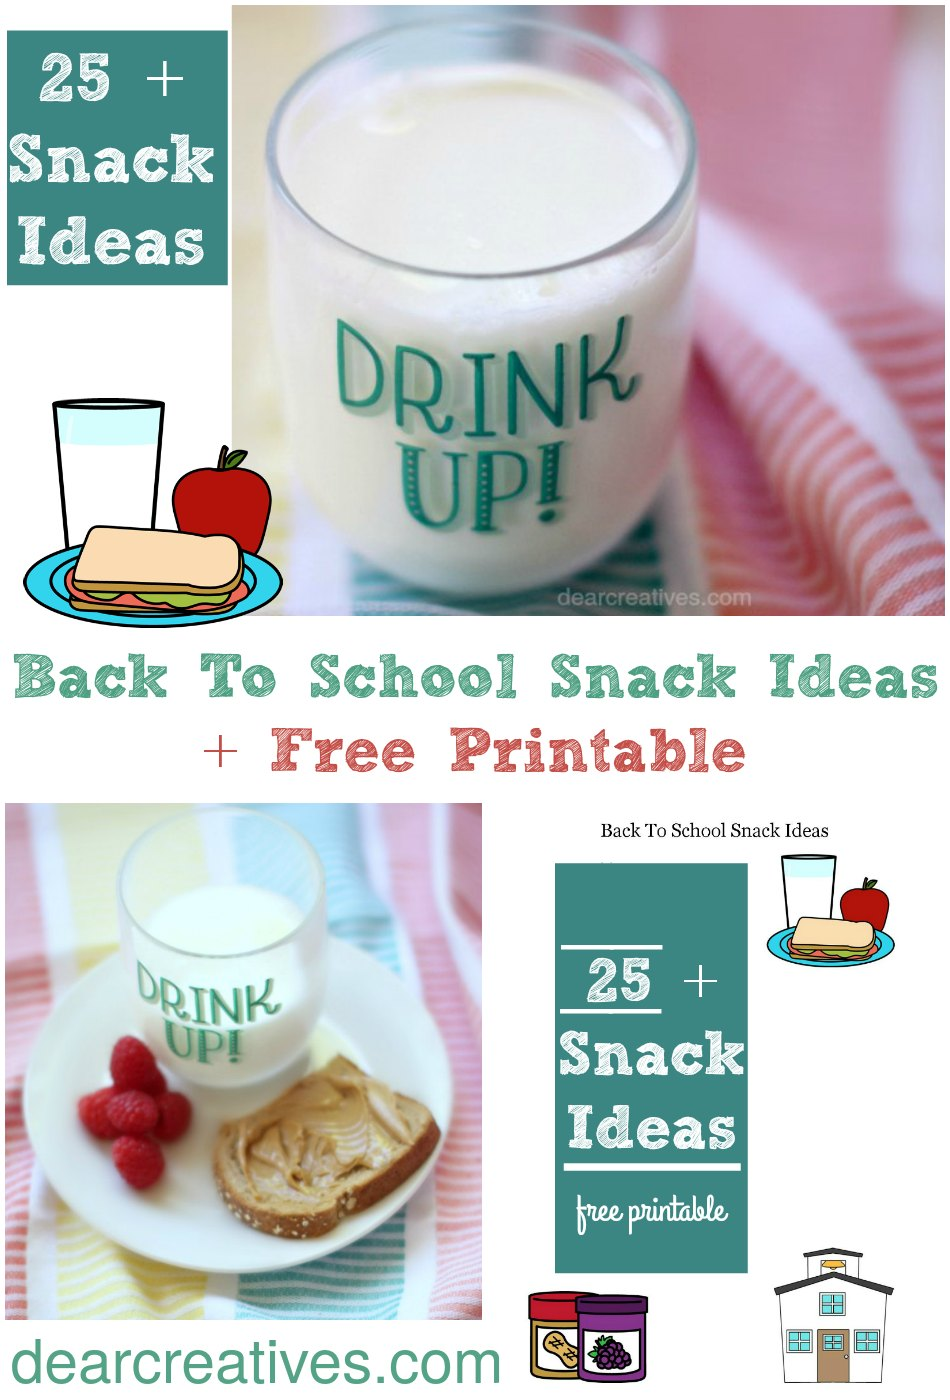 Back to School Snack Ideas and Free Printables | so many ideas you'll love